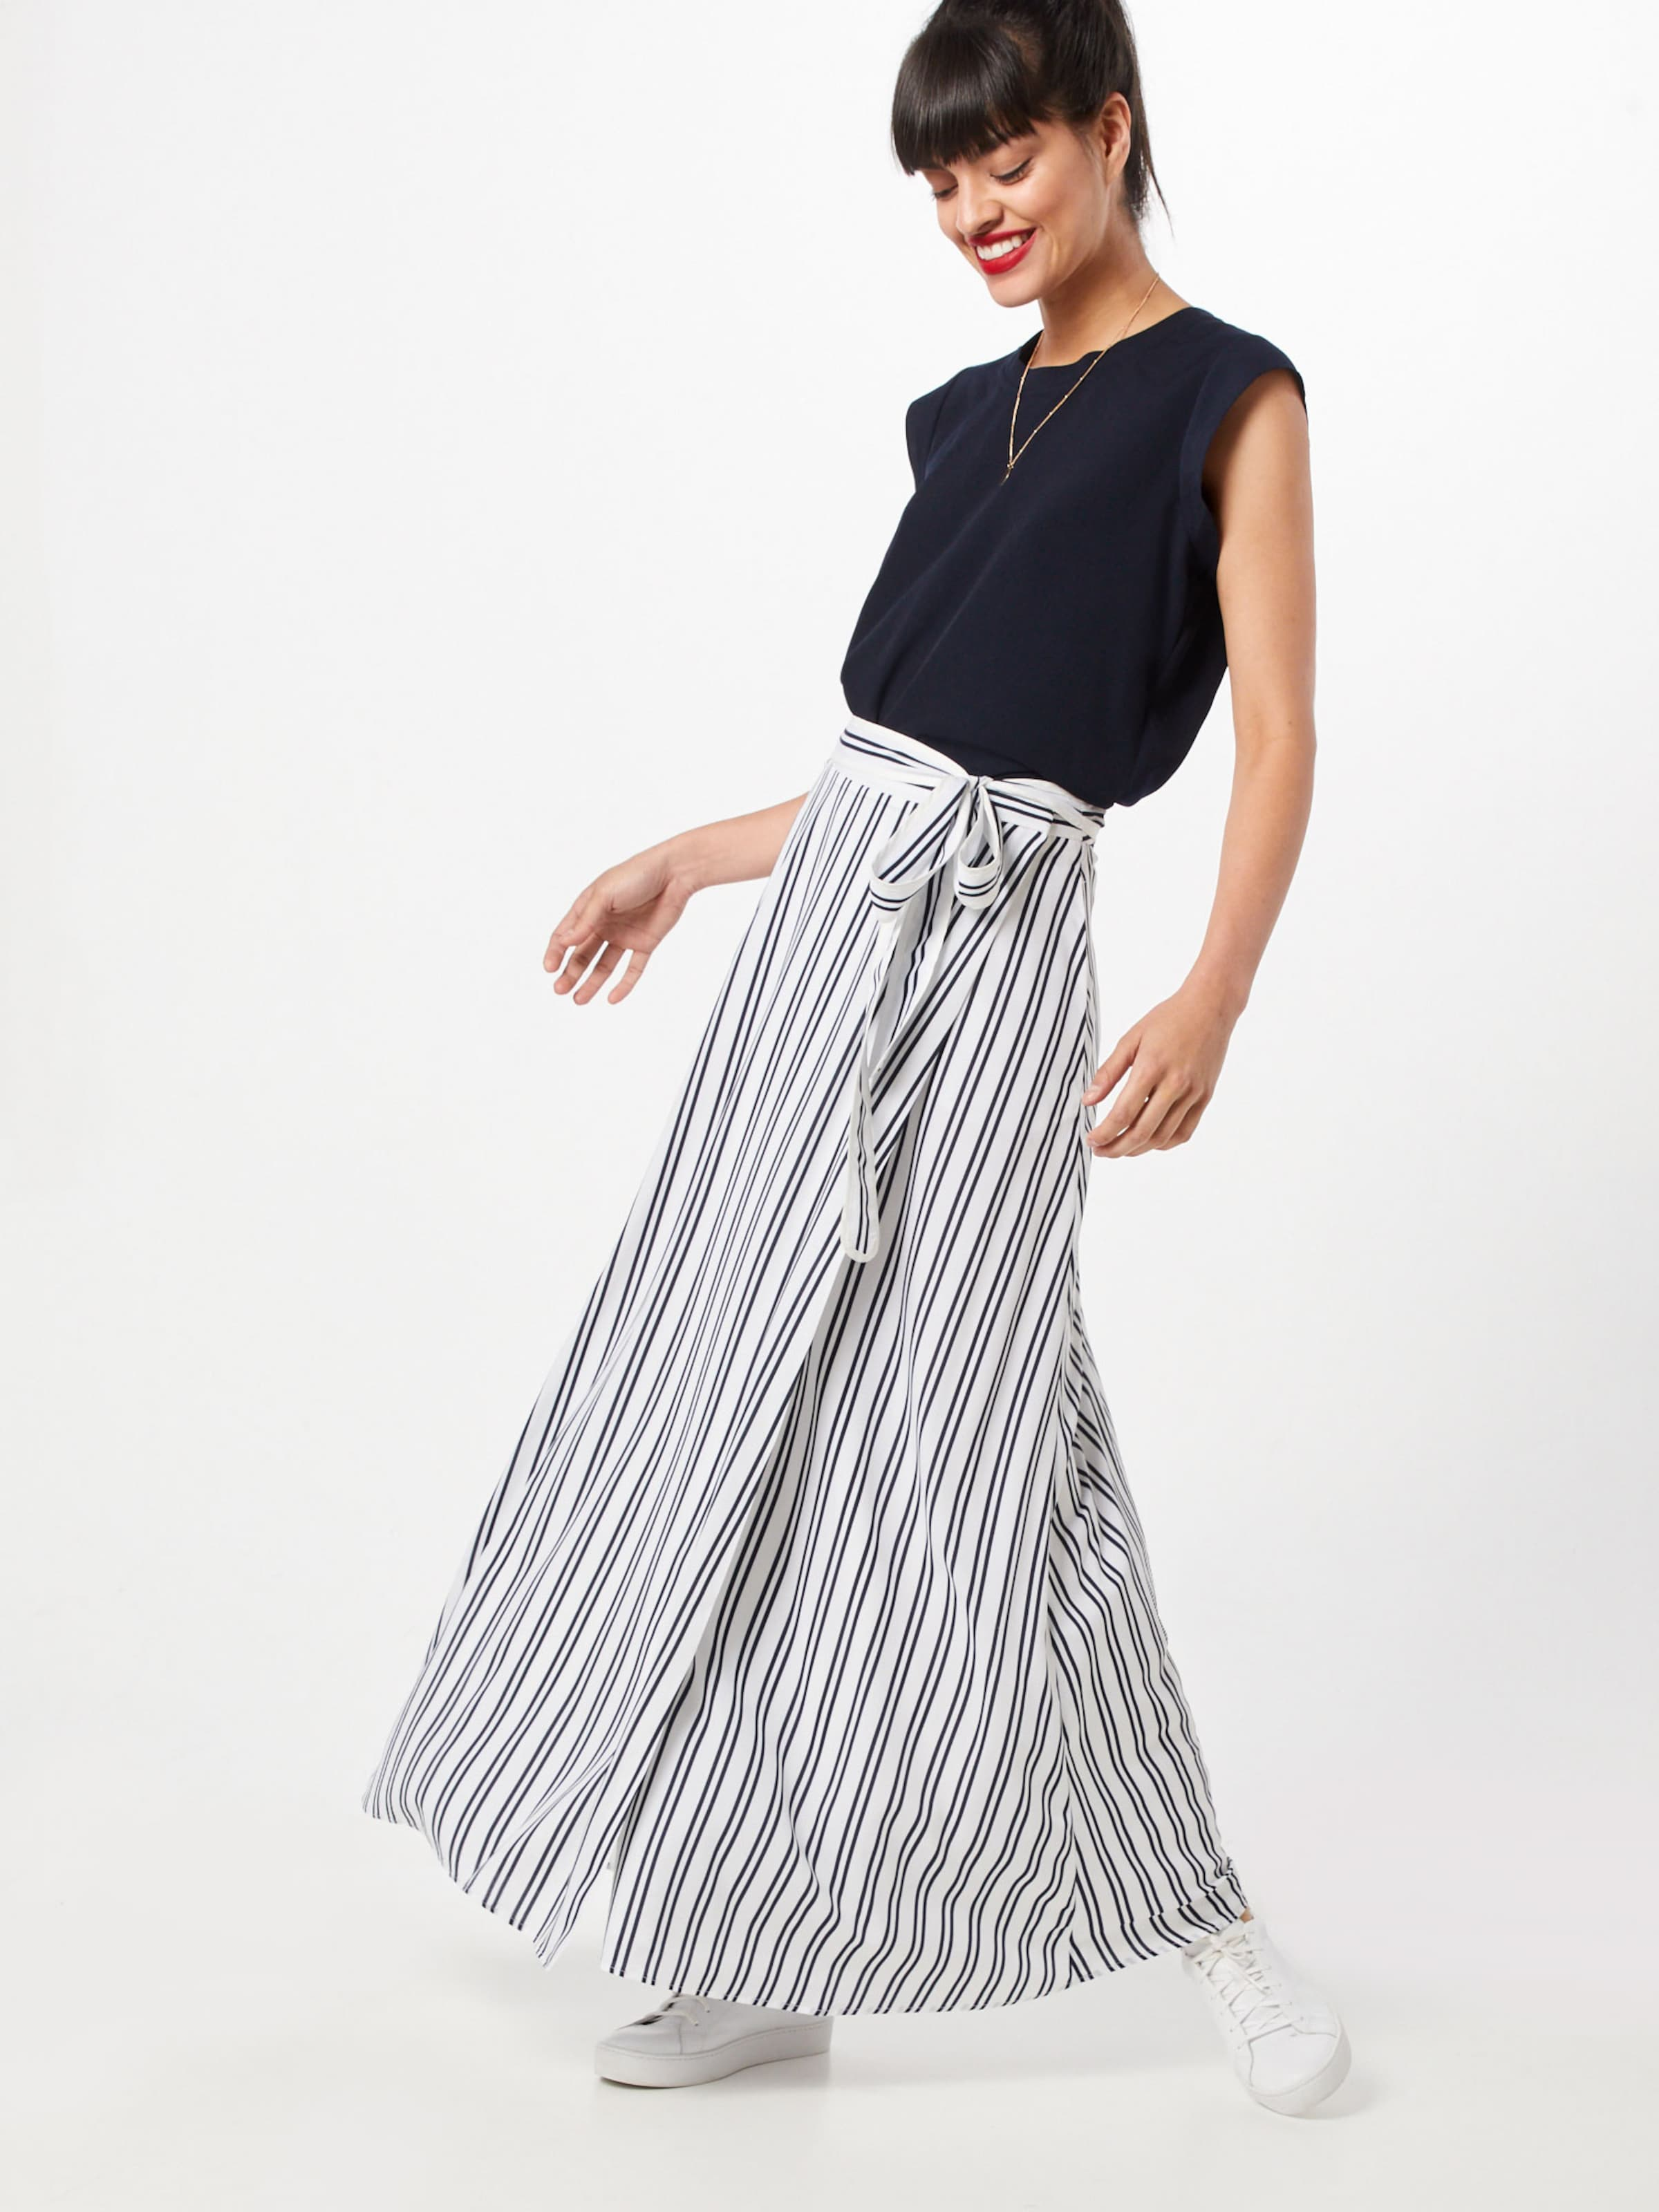 'i Rock Banana In Maxi Skirt' SchwarzWeiß Republic Striped shdCxtQr